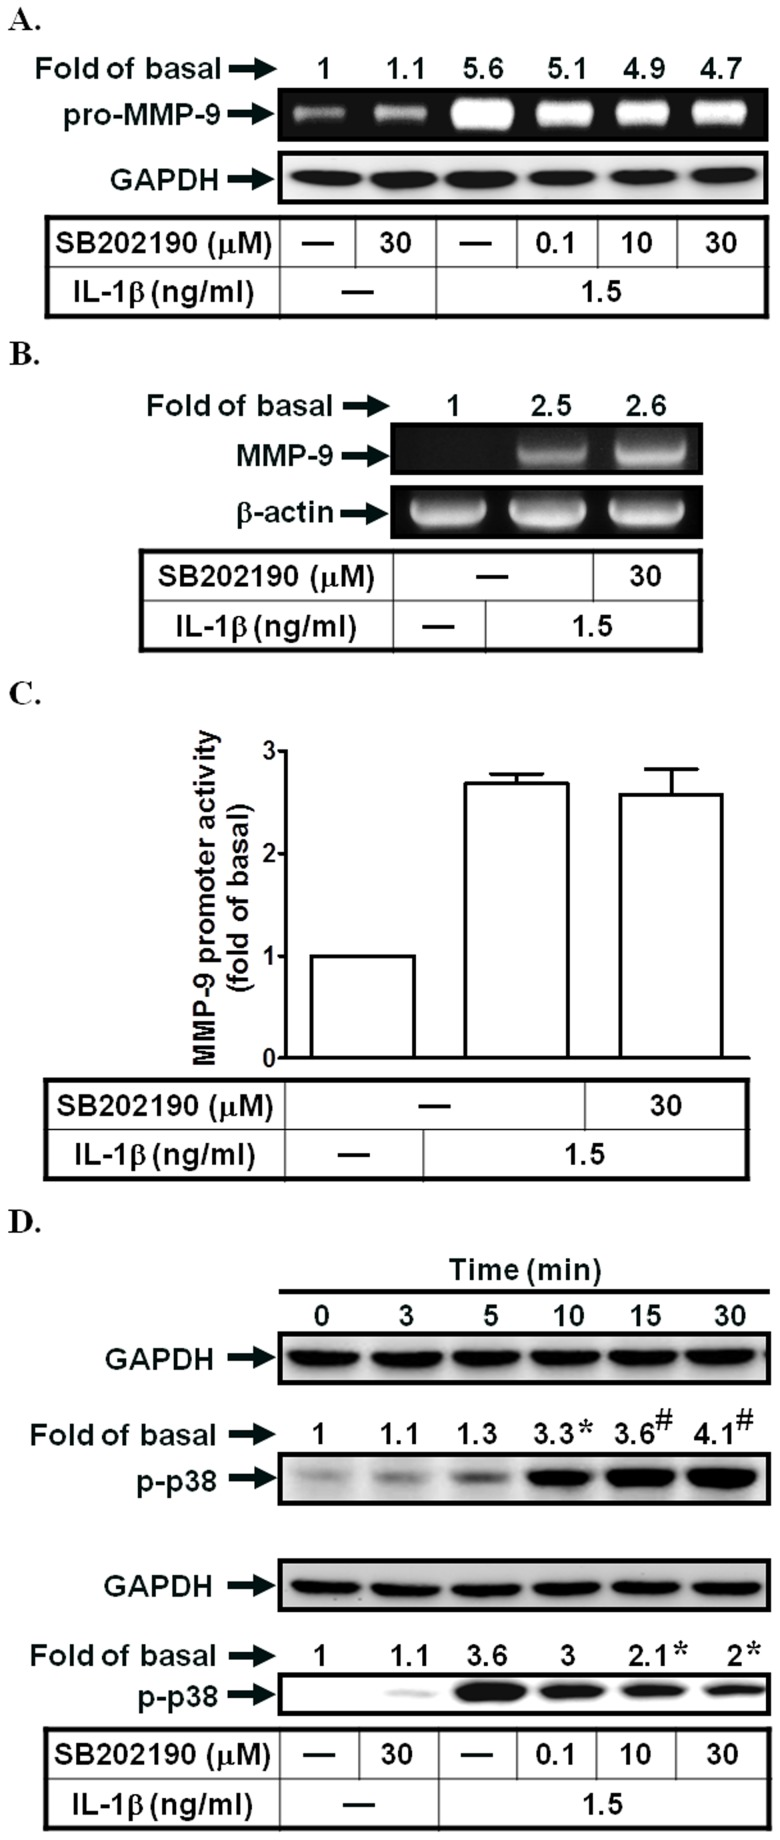 p38 MAPK activation is not involved in IL-1β-induced MMP-9 expression. (A) Cells were pretreated with SB202190 for 1 h, and then incubated with IL-1β for 12 h. The conditioned media were subjected to determine MMP-9 expression. (B, C) Cells were pretreated with SB202190, and then incubated with IL-1β for 4 h (mRNA levels) or 12 h (promoter activity). The mRNA levels and promoter activity of MMP-9 were determined. (D) Cells were treated with IL-1β for the indicated time intervals or pretreated with SB202190, and then treated with IL-1β for 30 min. The phospho-p38 MAPK protein expression was determined by Western blotting. Data are expressed as mean±S.E.M. of three independent experiments. * P